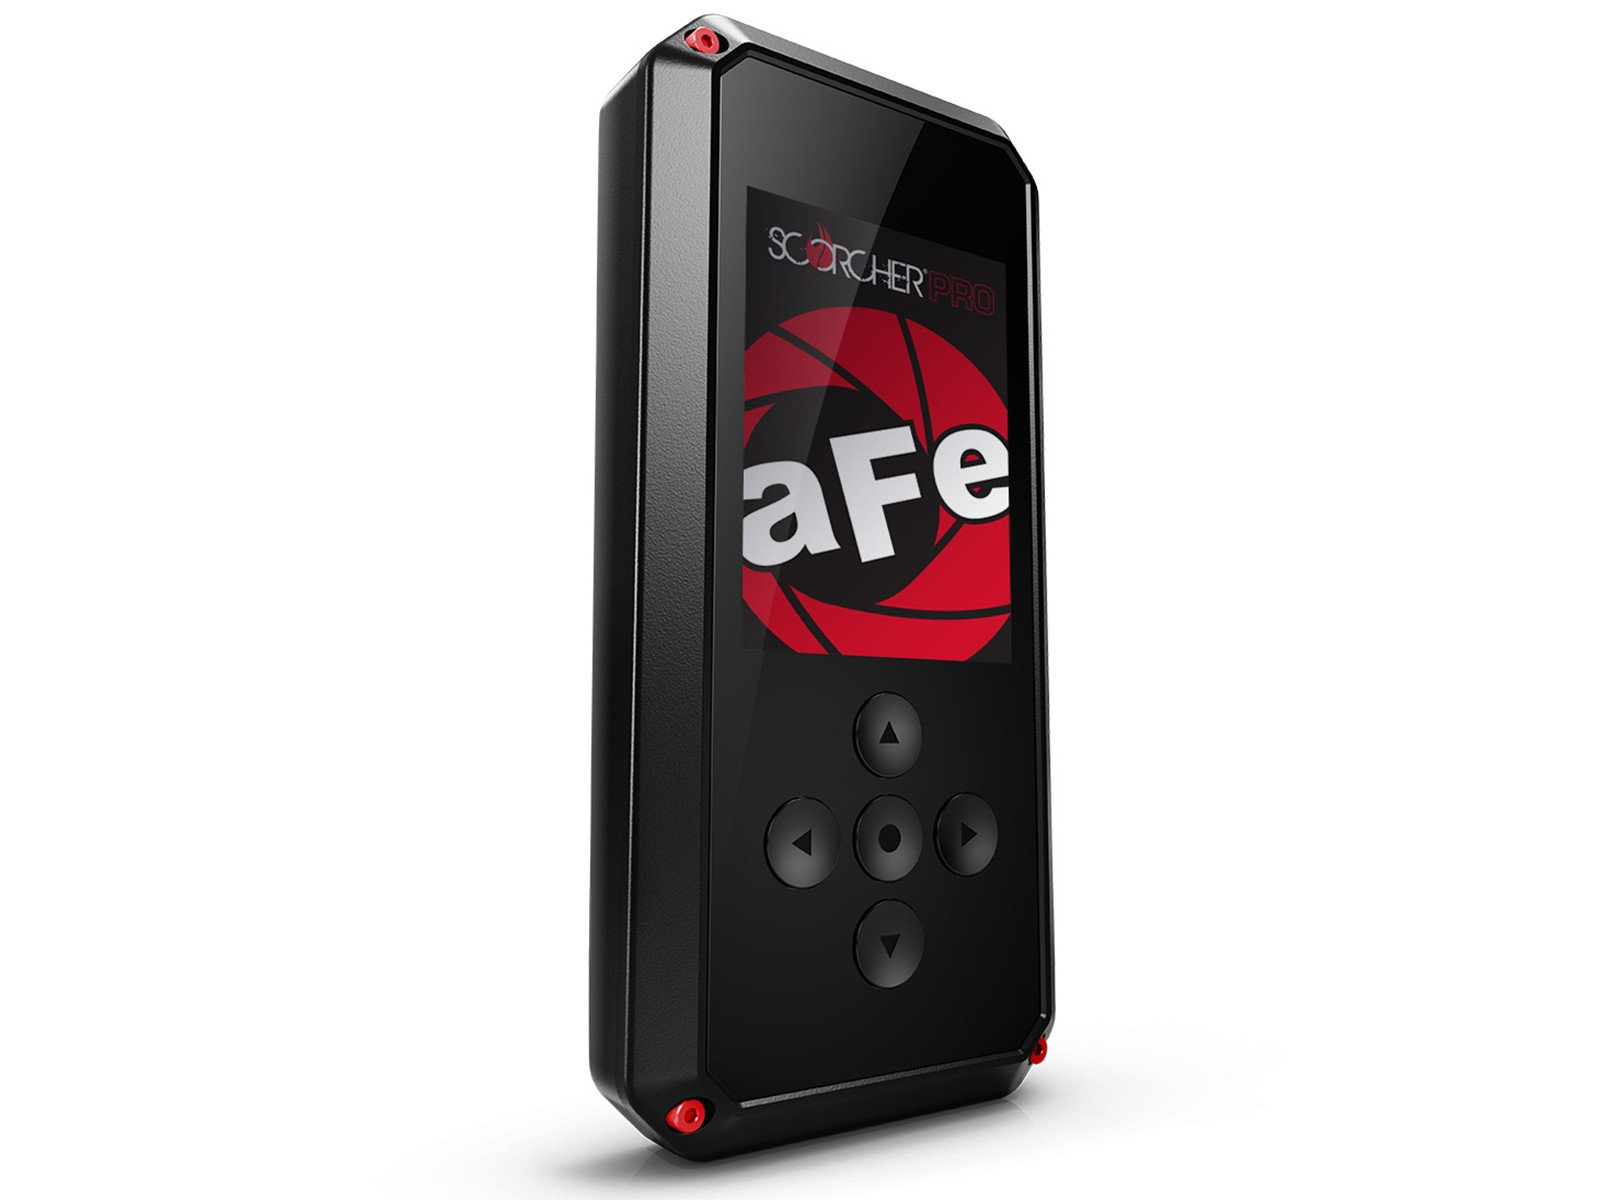 aFe POWER SCORCHER PRO Performance Programmer w/ Preloaded Tunes 2007-2017 Ships Free